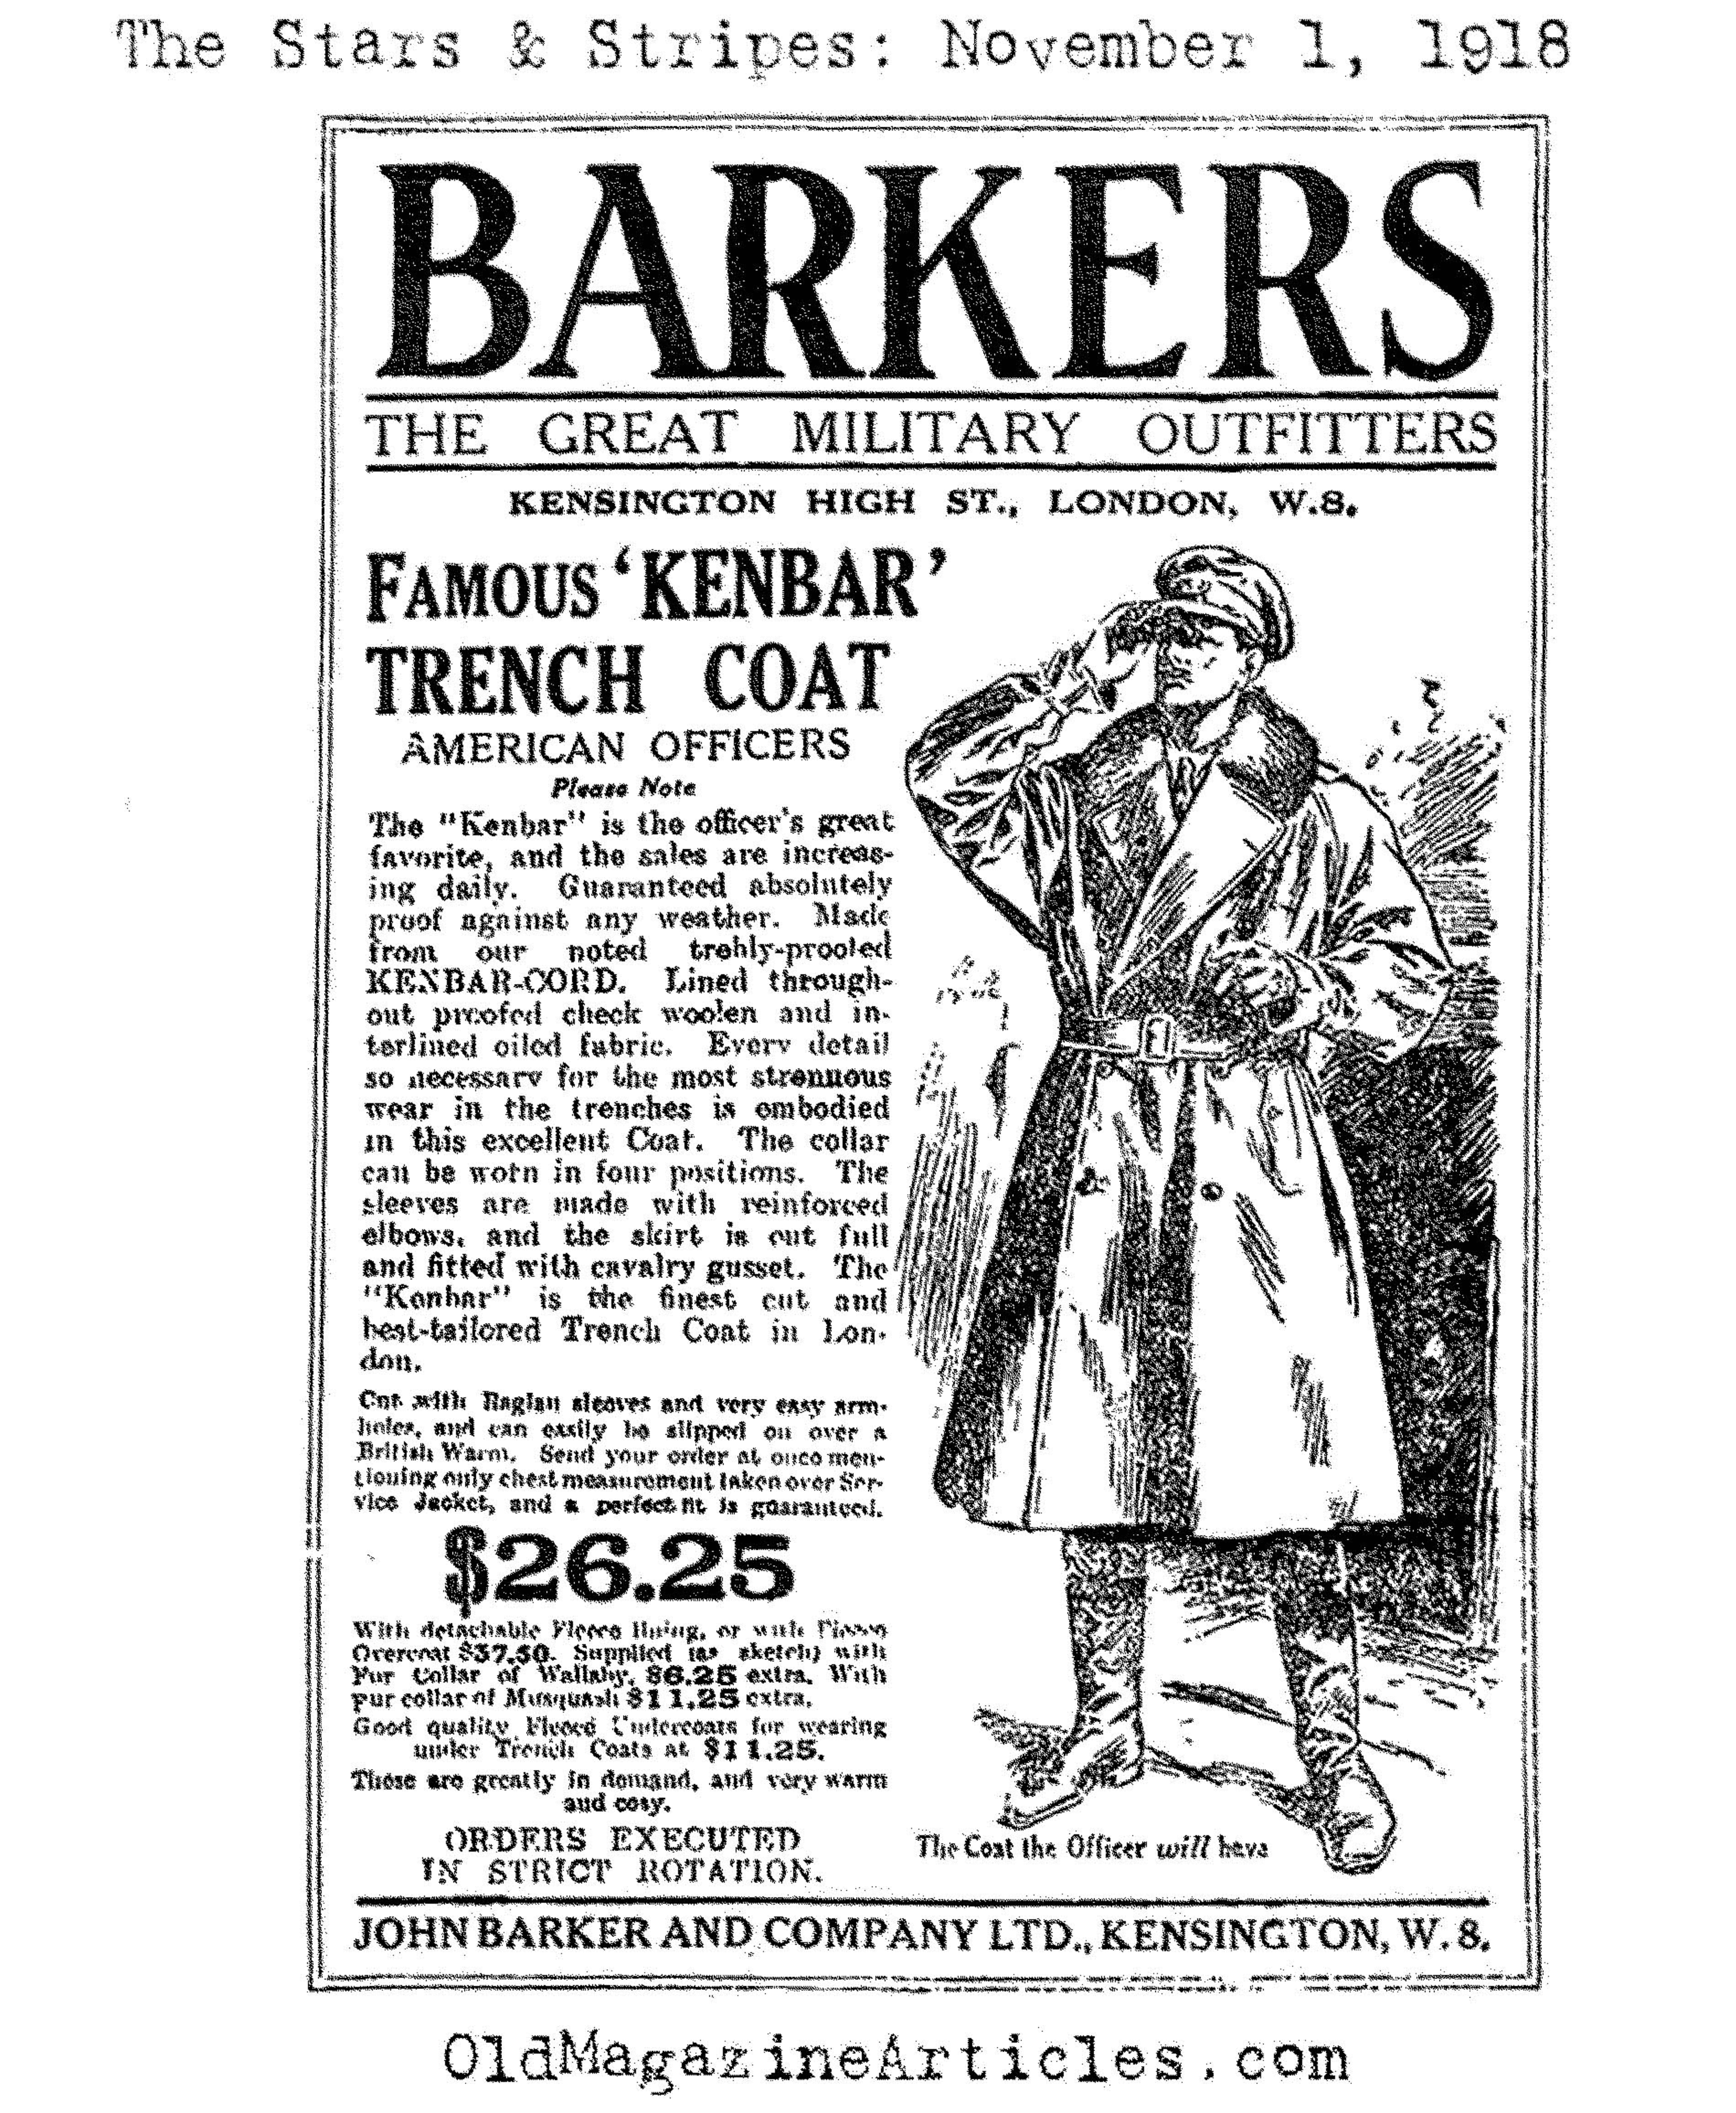 Trench Coat by Barker  (The Stars and Stripes, 1918)